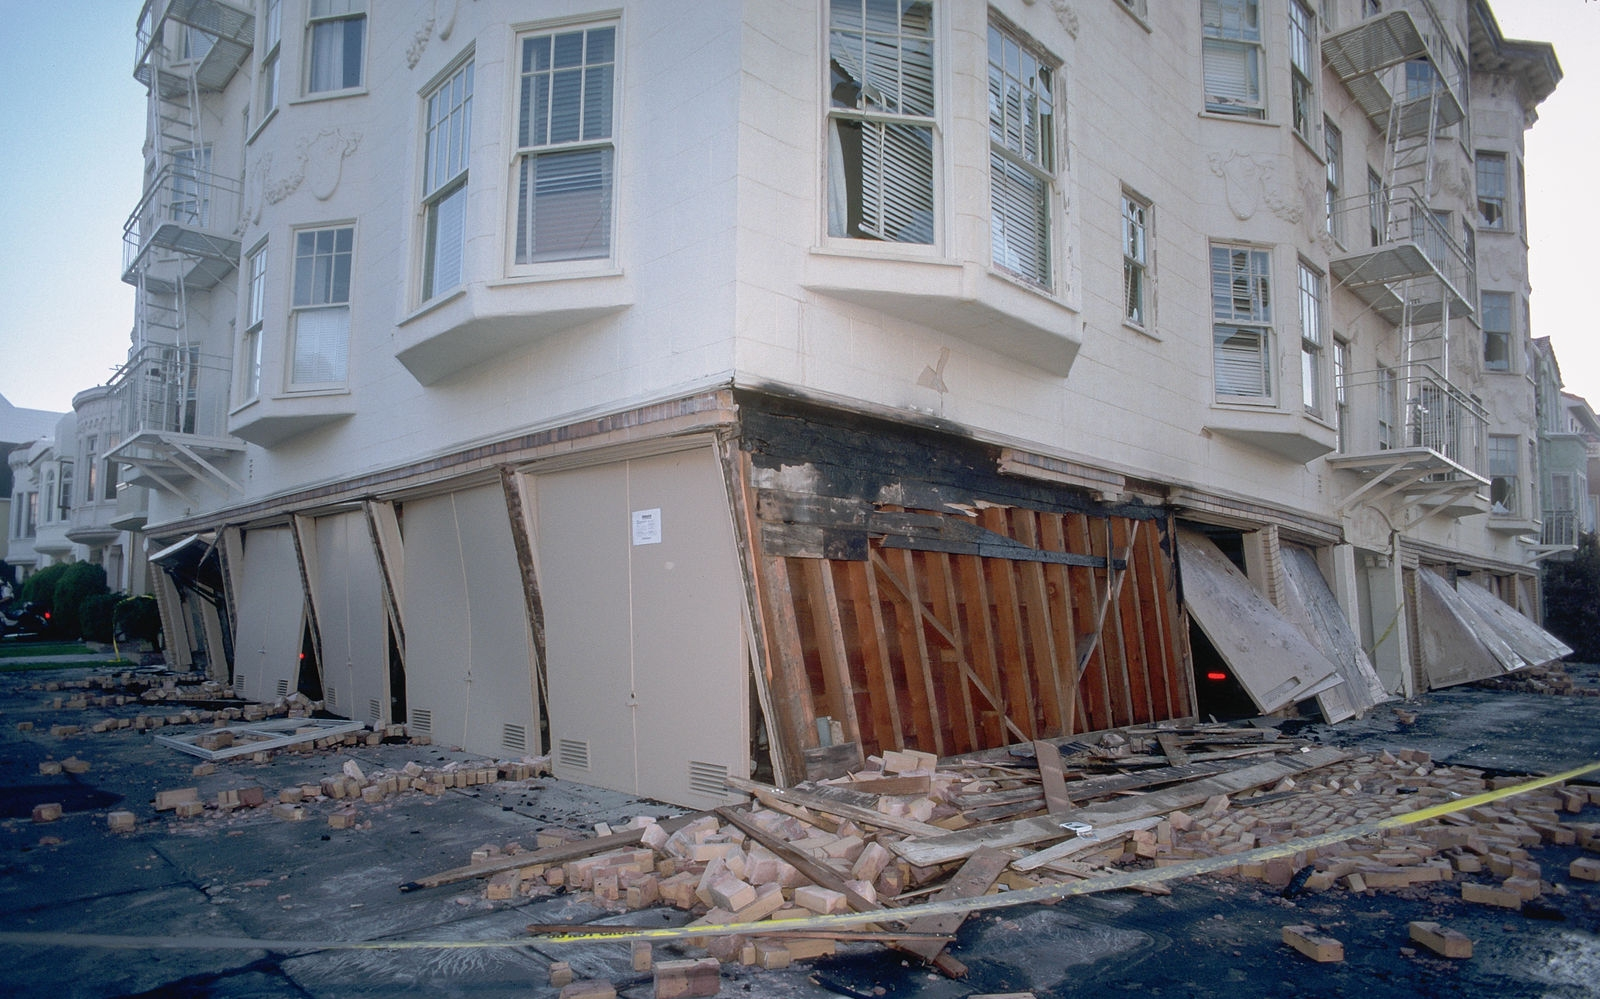 Collapsed building, San Francisco, 1989 Photo by: JK Nakata, United States Geological Survey